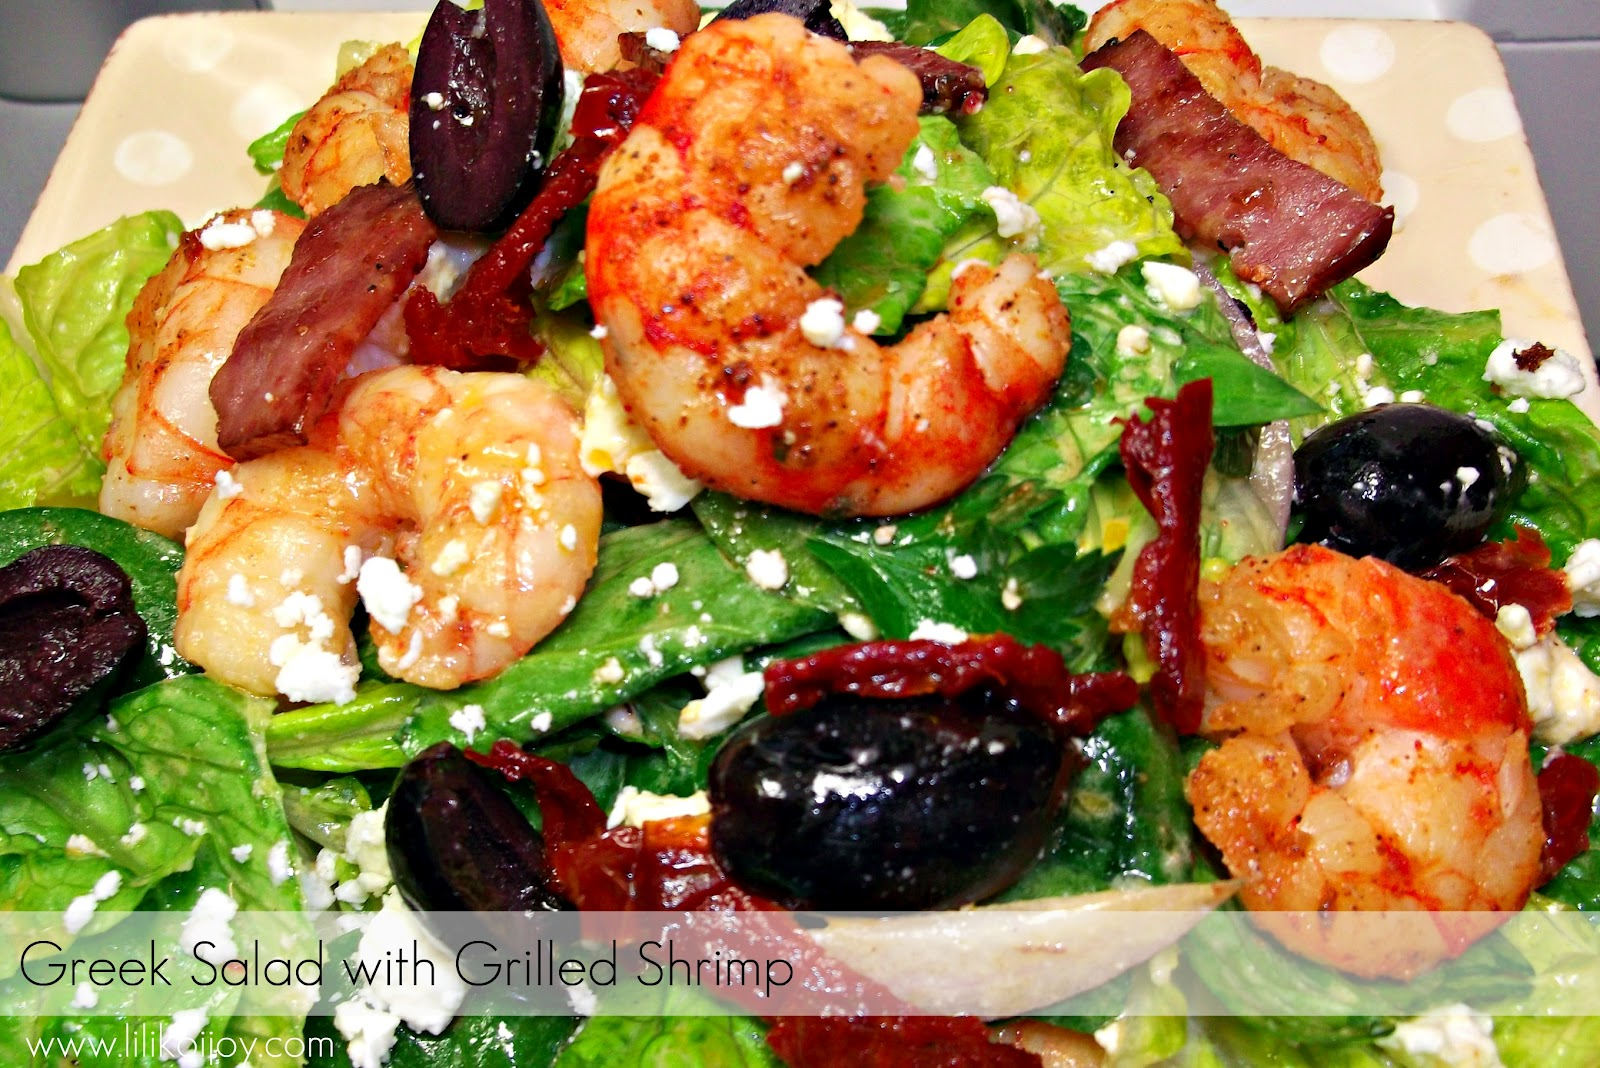 ... Joy: A Week of Healthy Dinners, Day 2: Greek Salad with Grilled Shrimp